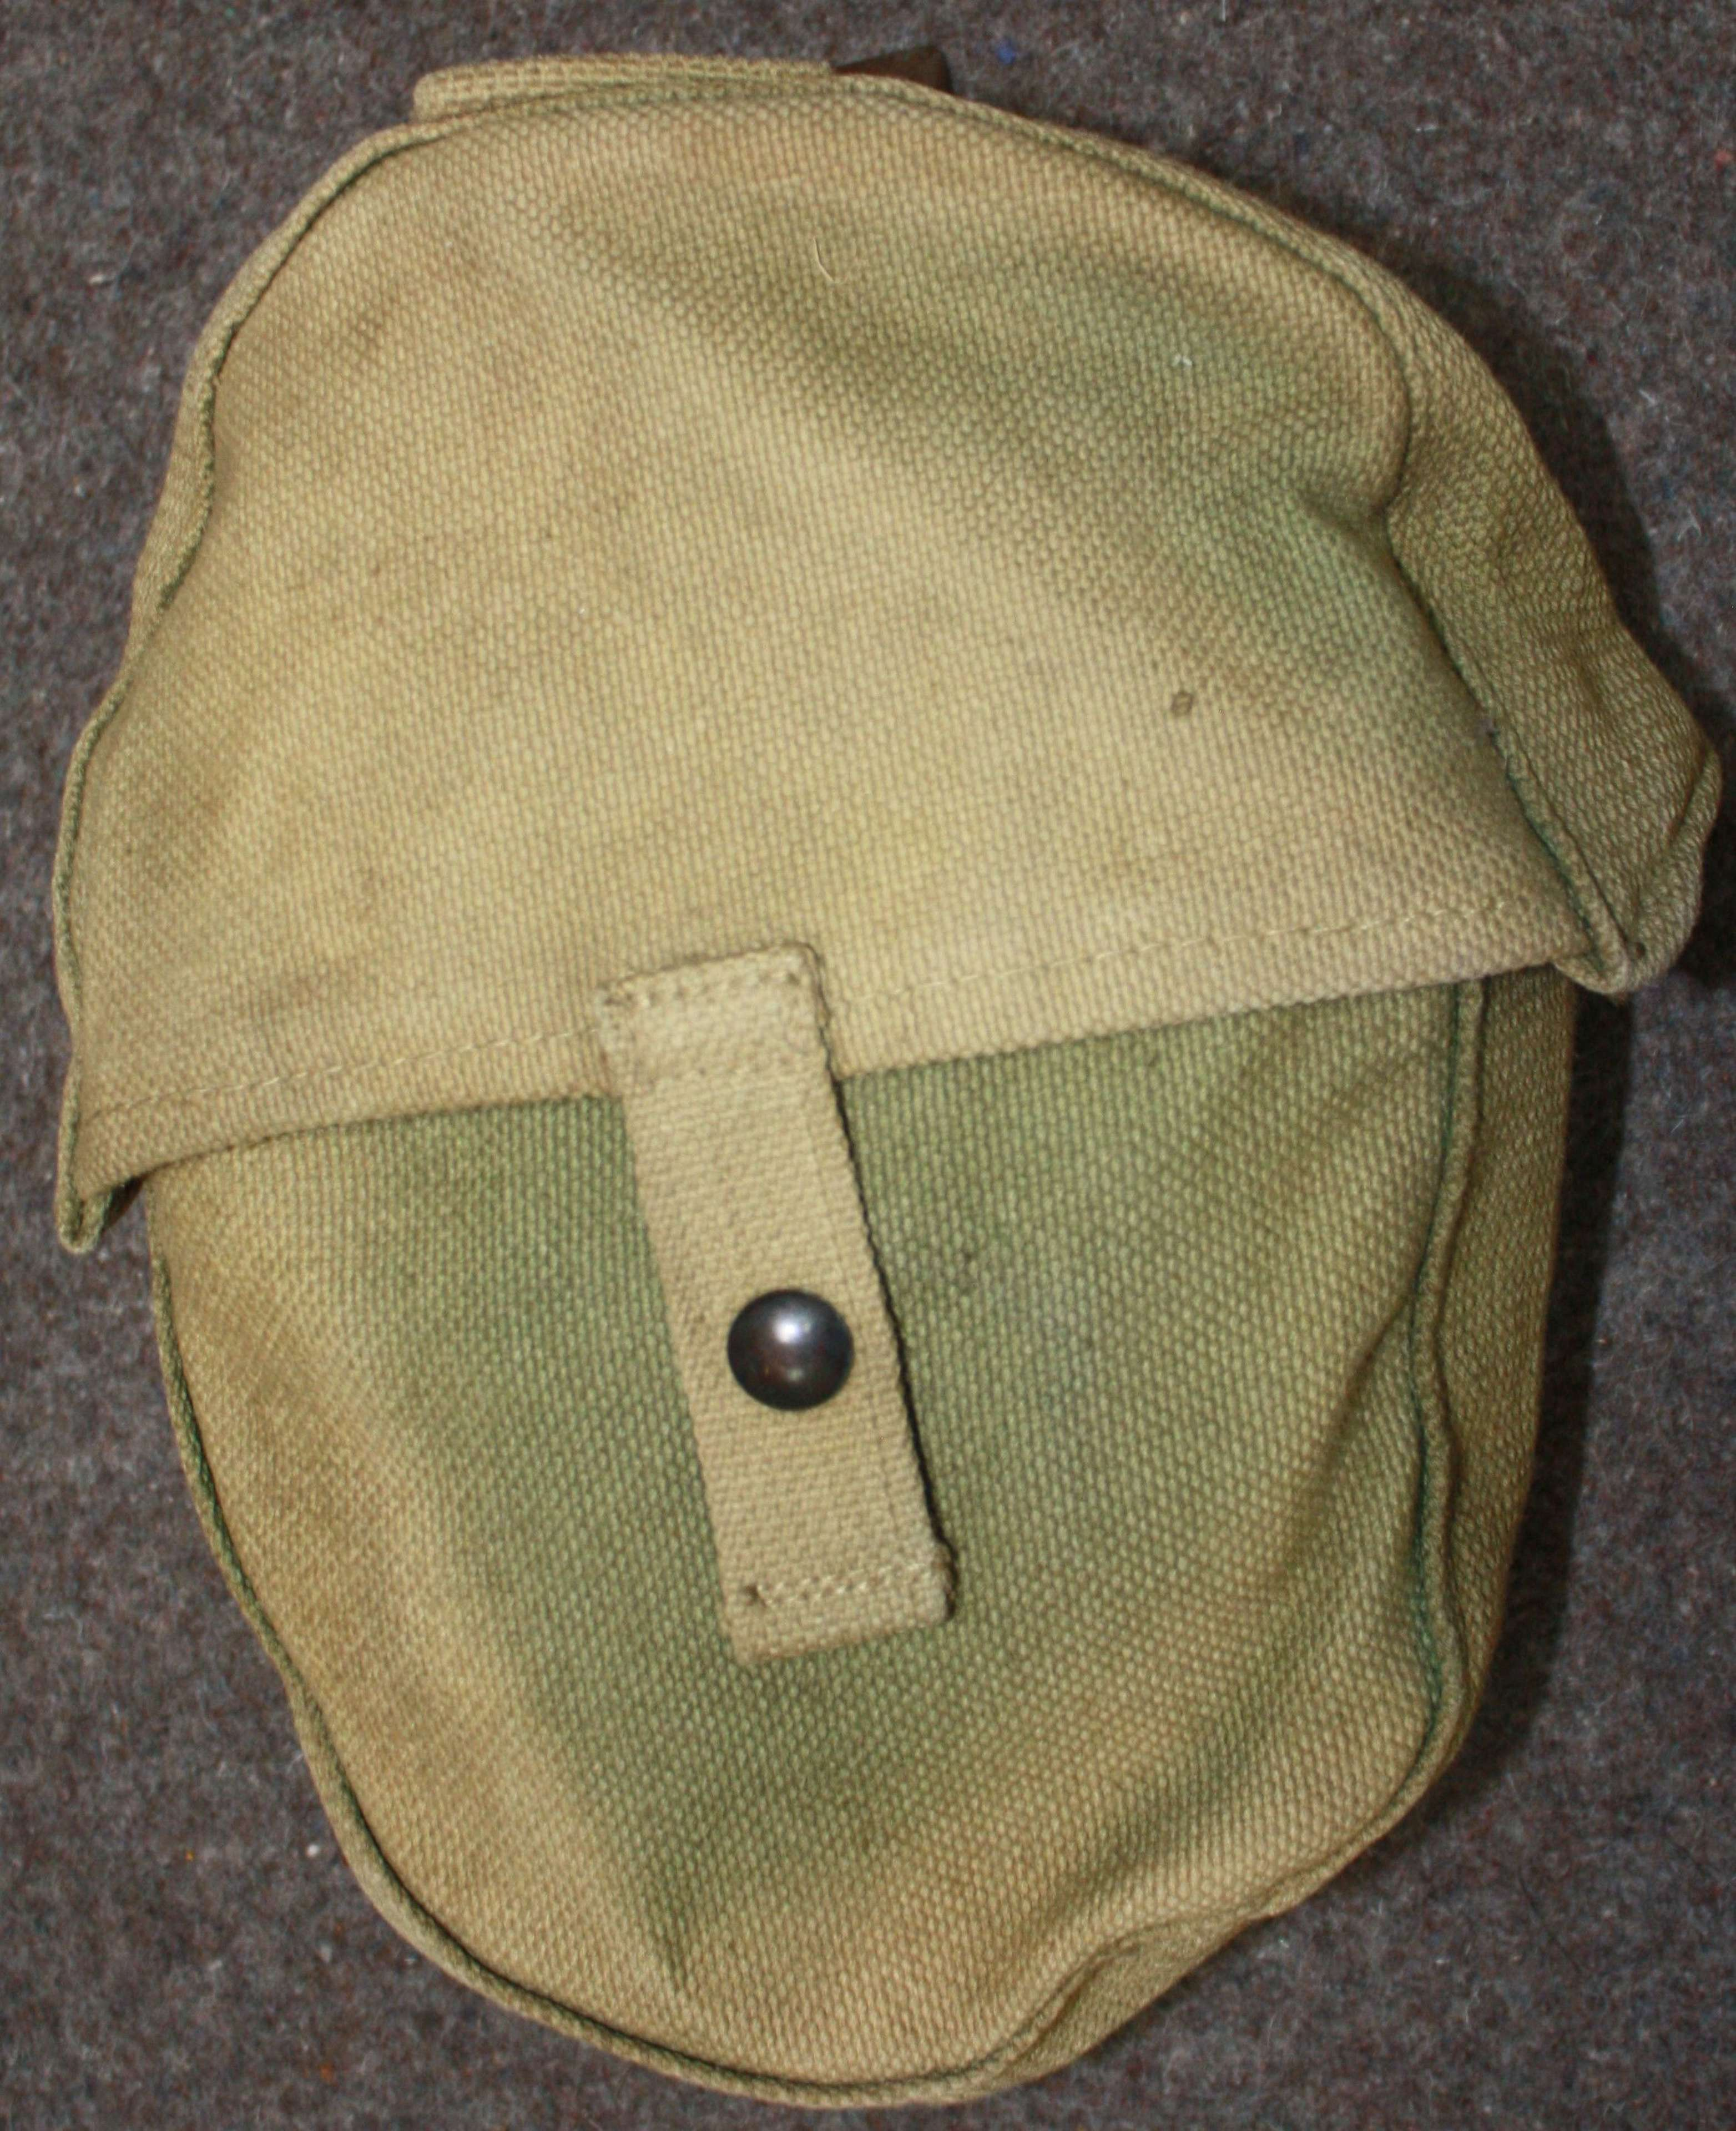 A WWII GREEN SOUTH AFRICAN MADE LEWIS GUN MAGAZINE AMMO POUCH